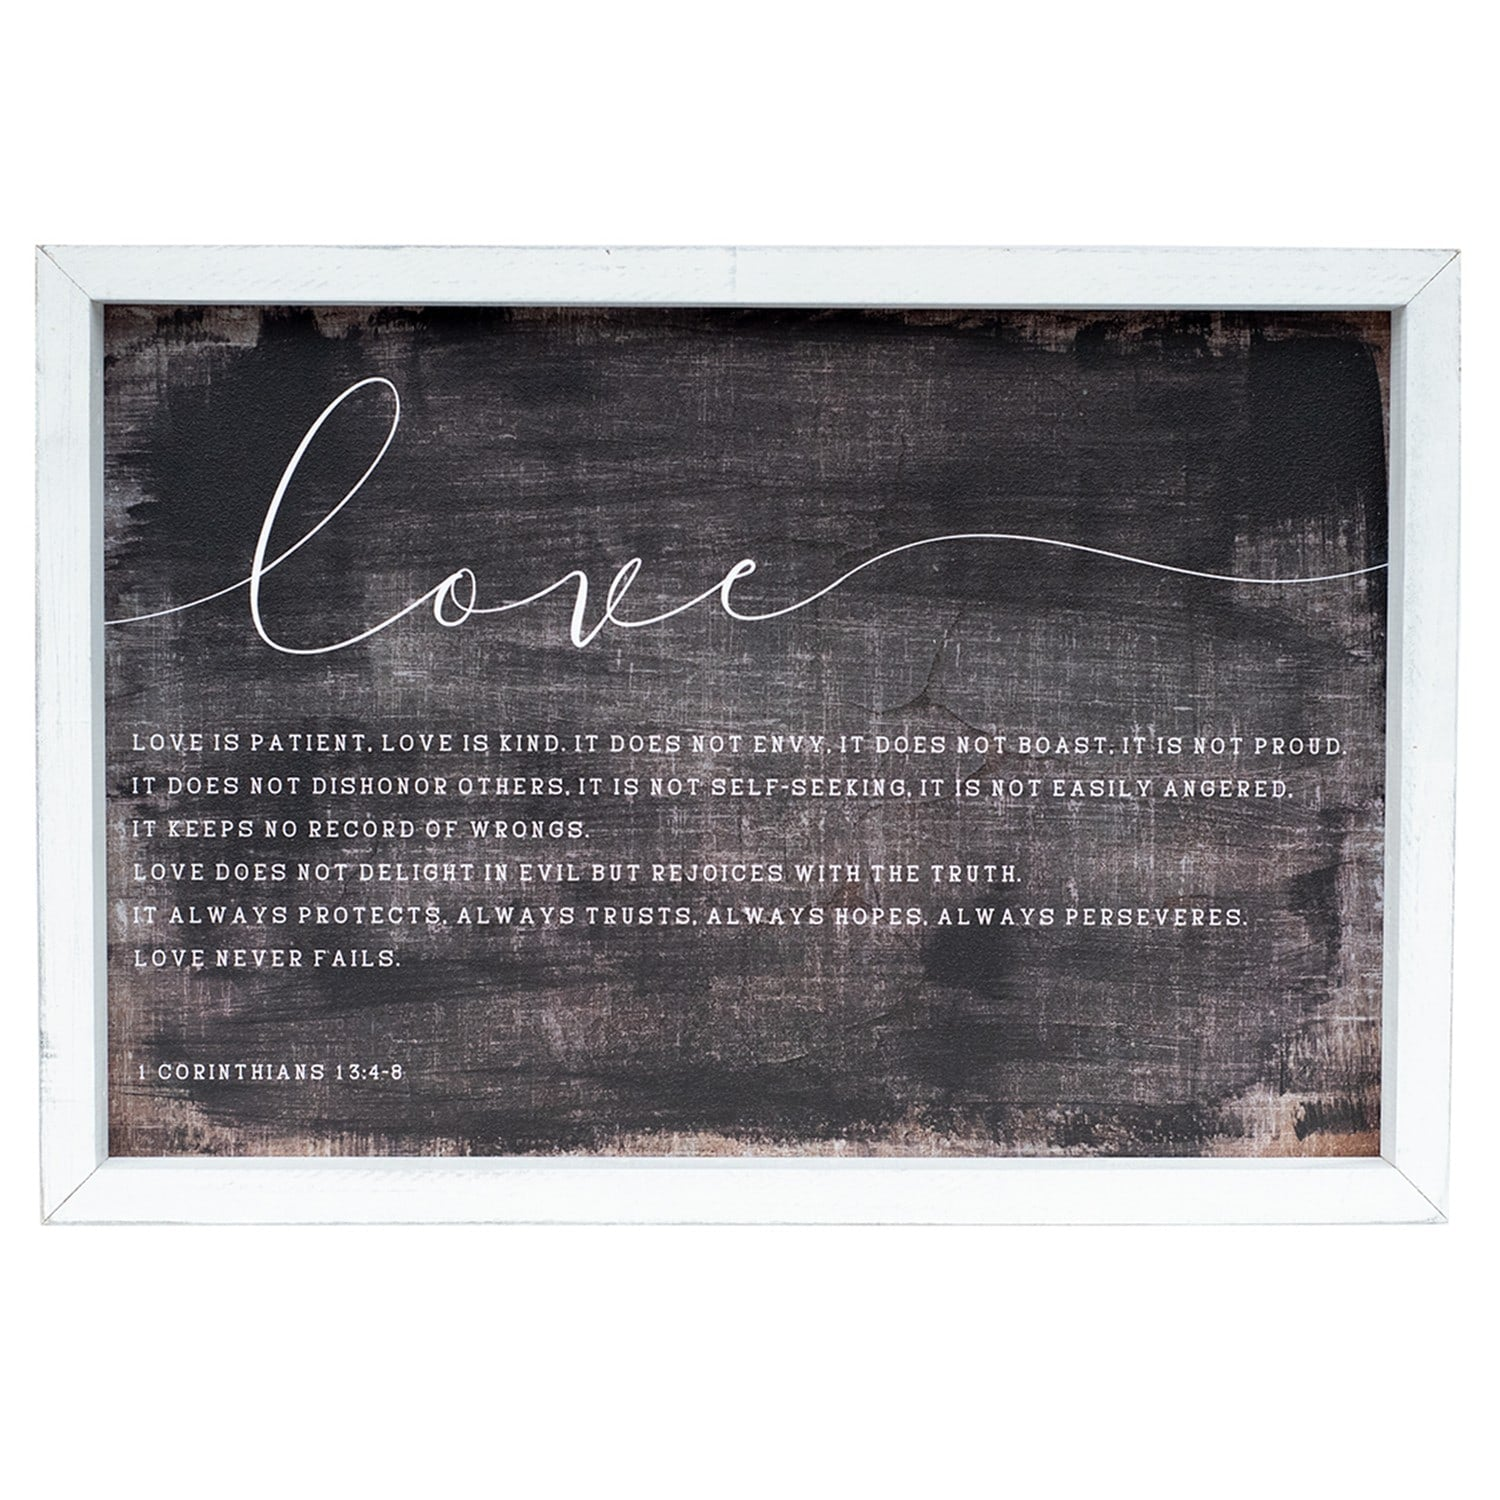 love is patient | wood framed sign